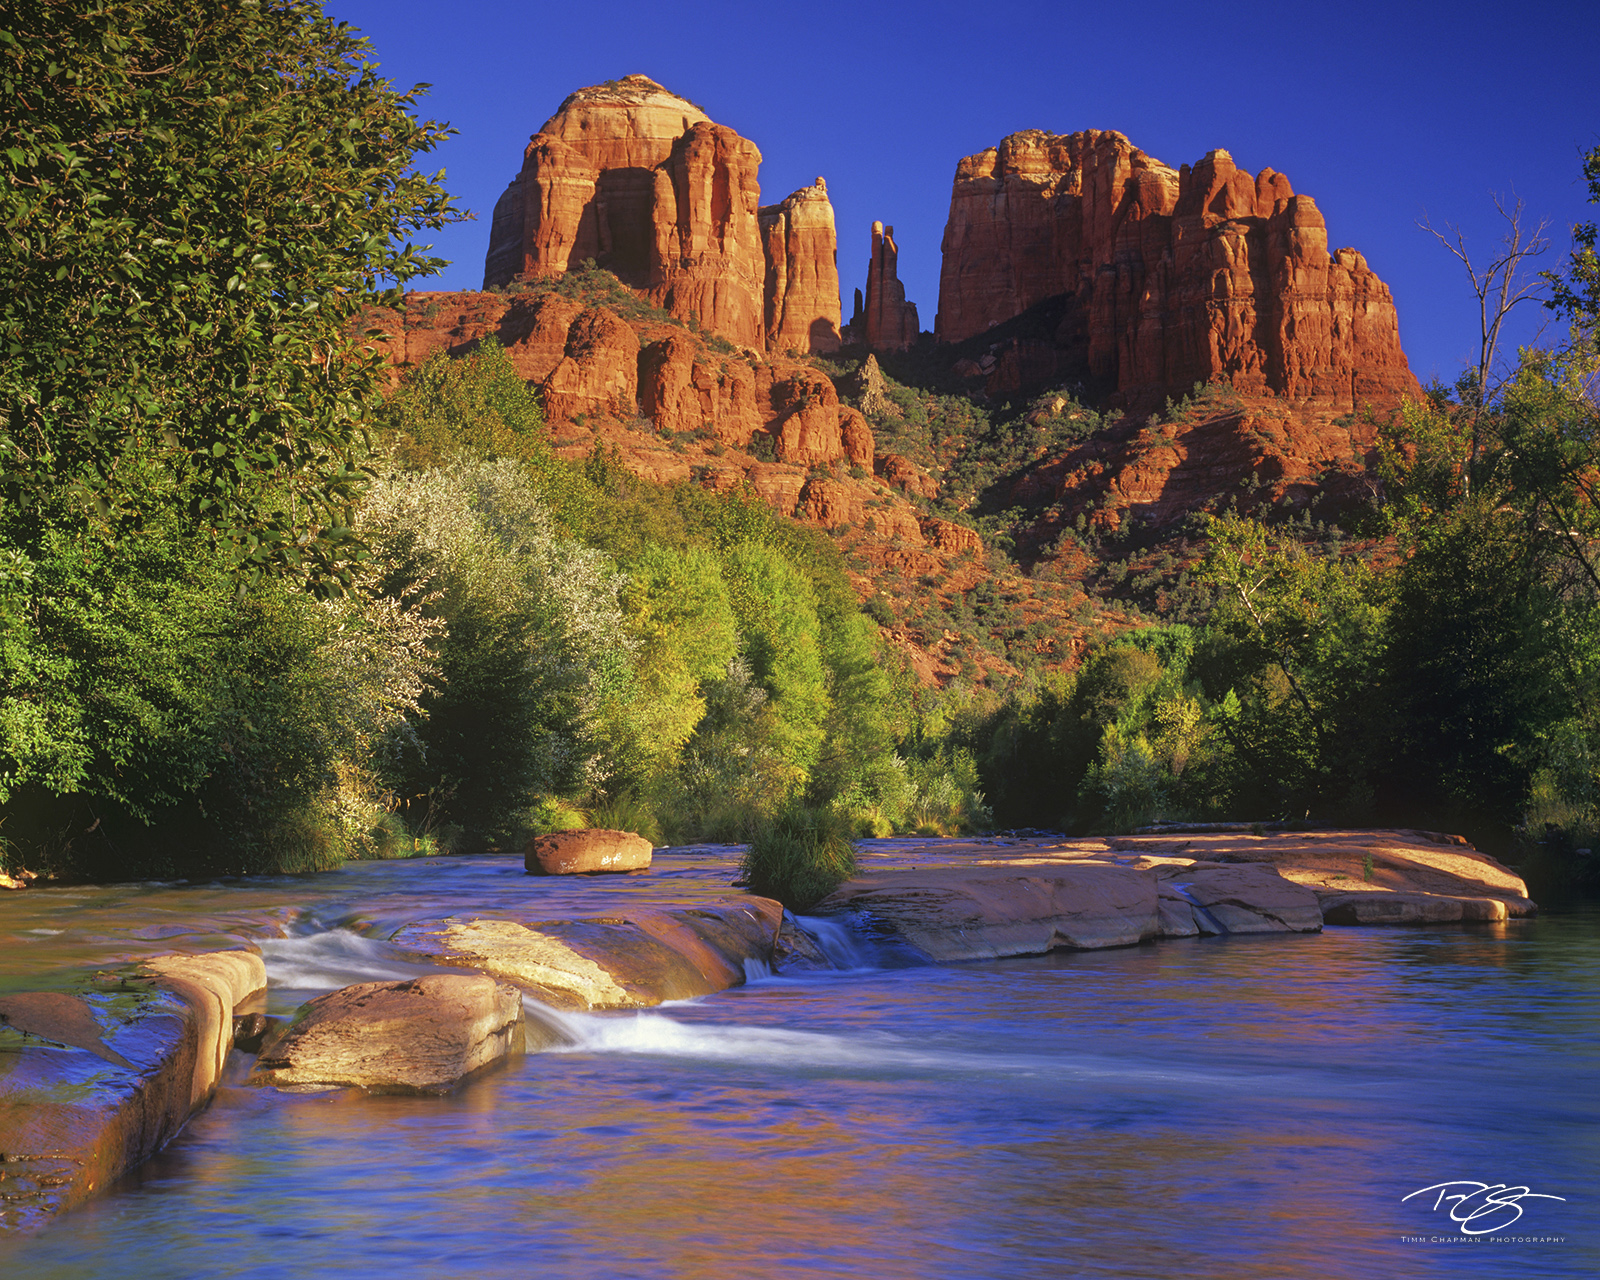 Arizona, Sedona, red rocks, red rock crossing, cathedral rock, red rocks state park, oak creek, canyon, northern arizona, oak creek canyon, autumn color, autumn colour, fall colour, reflection, photo